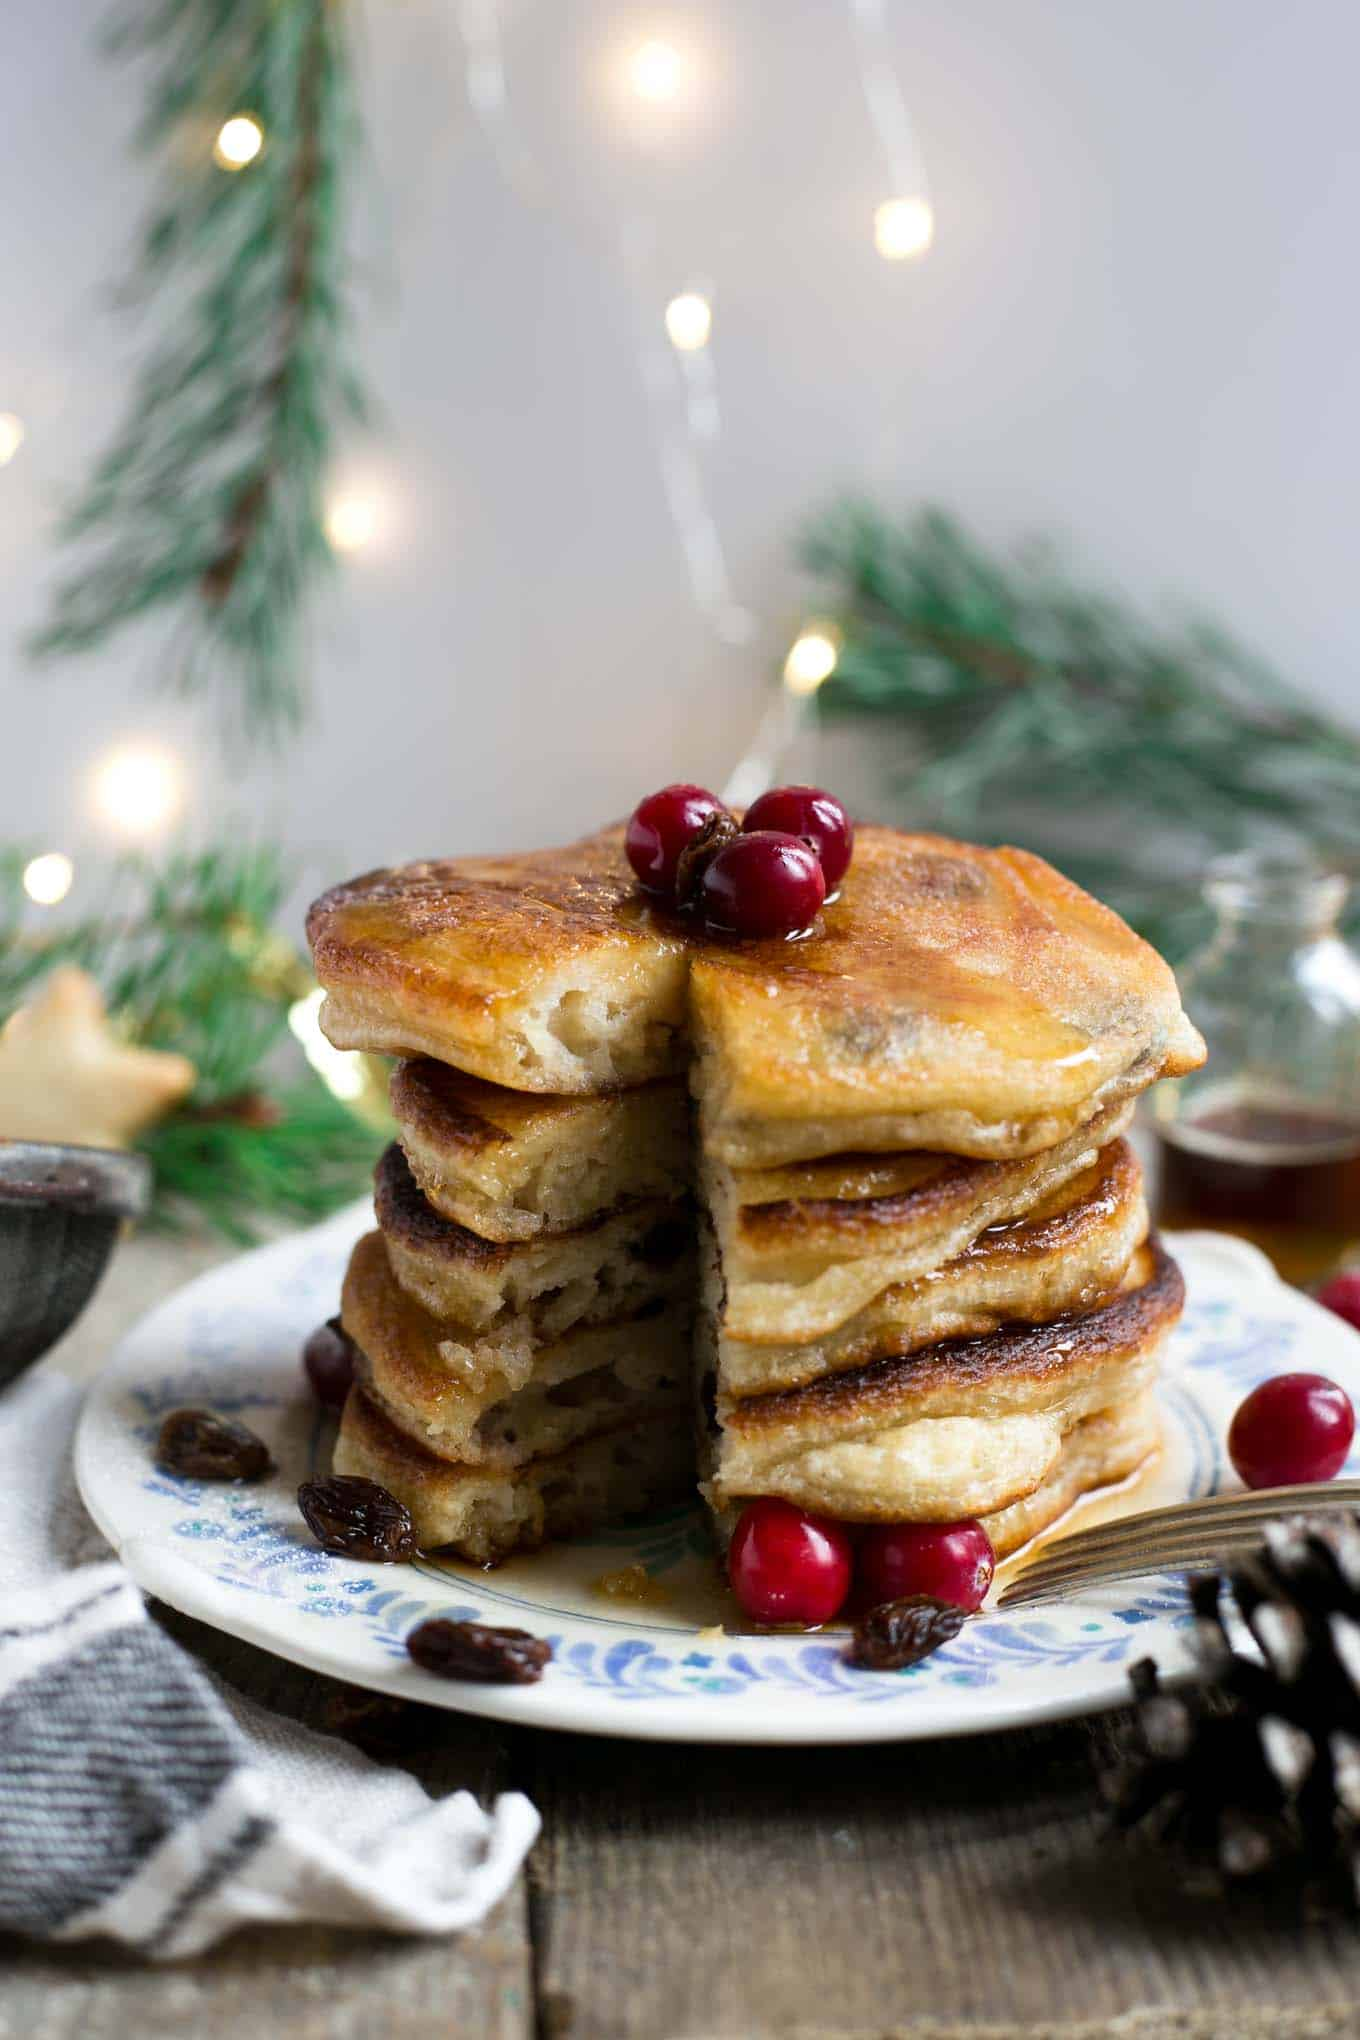 Rum & raisin pancakes, super fluffy and soft, perfect for #Christmas breakfast! #vegan #dairyfree #pancakes | via @annabanana.co